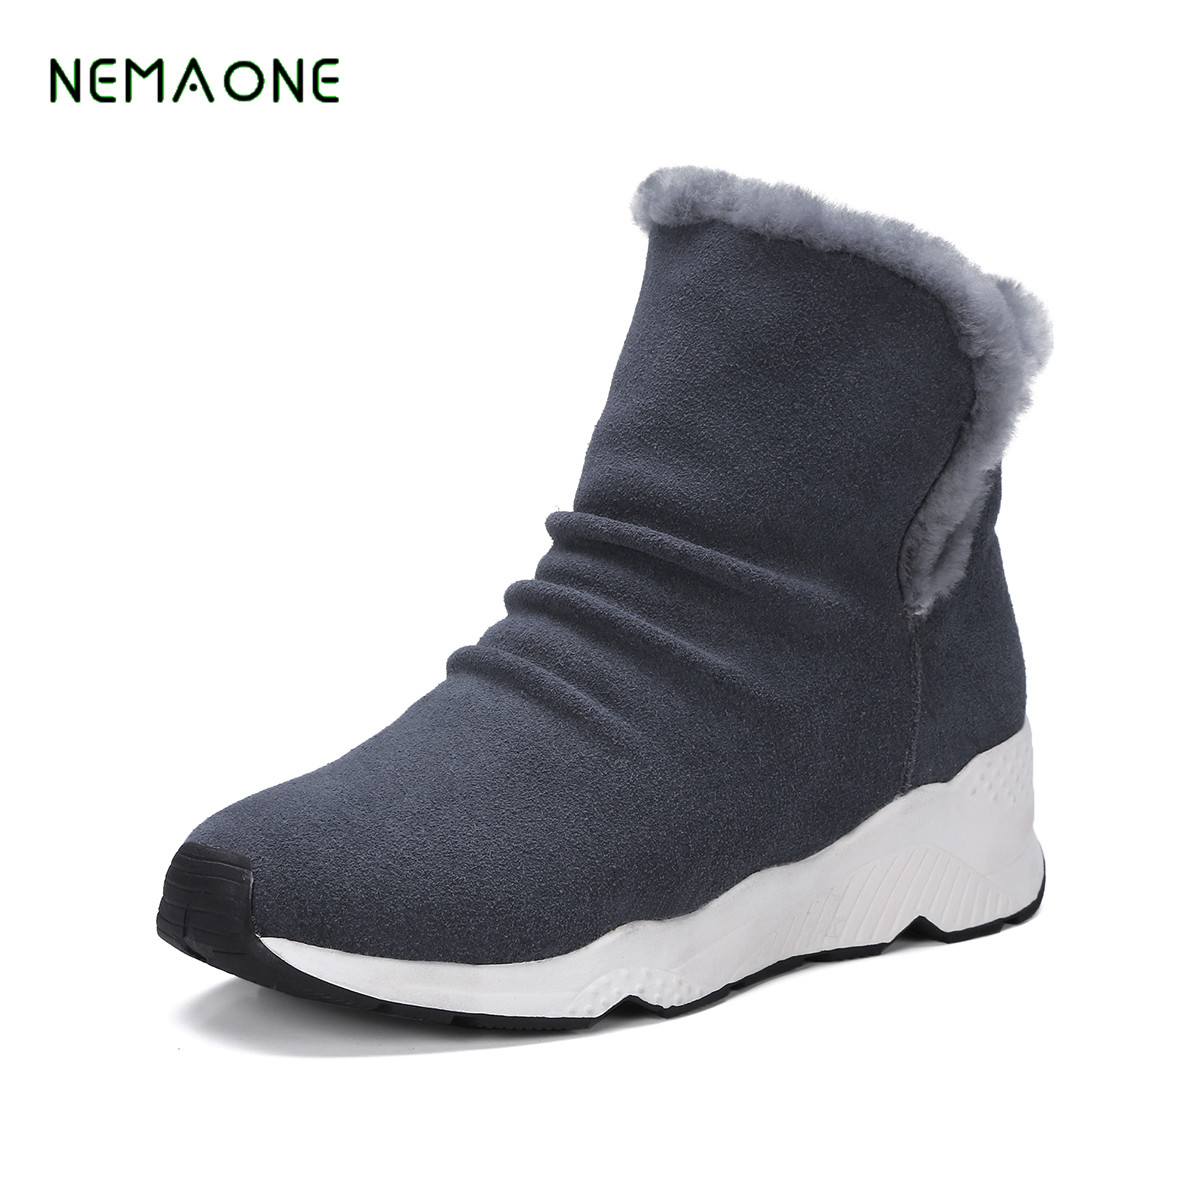 NEMAONE 2017 NEW Women Winter Boots Genuine Leather Ankle Snow Boots Female Warm Fur Plush Insole High Quality Women Shoes